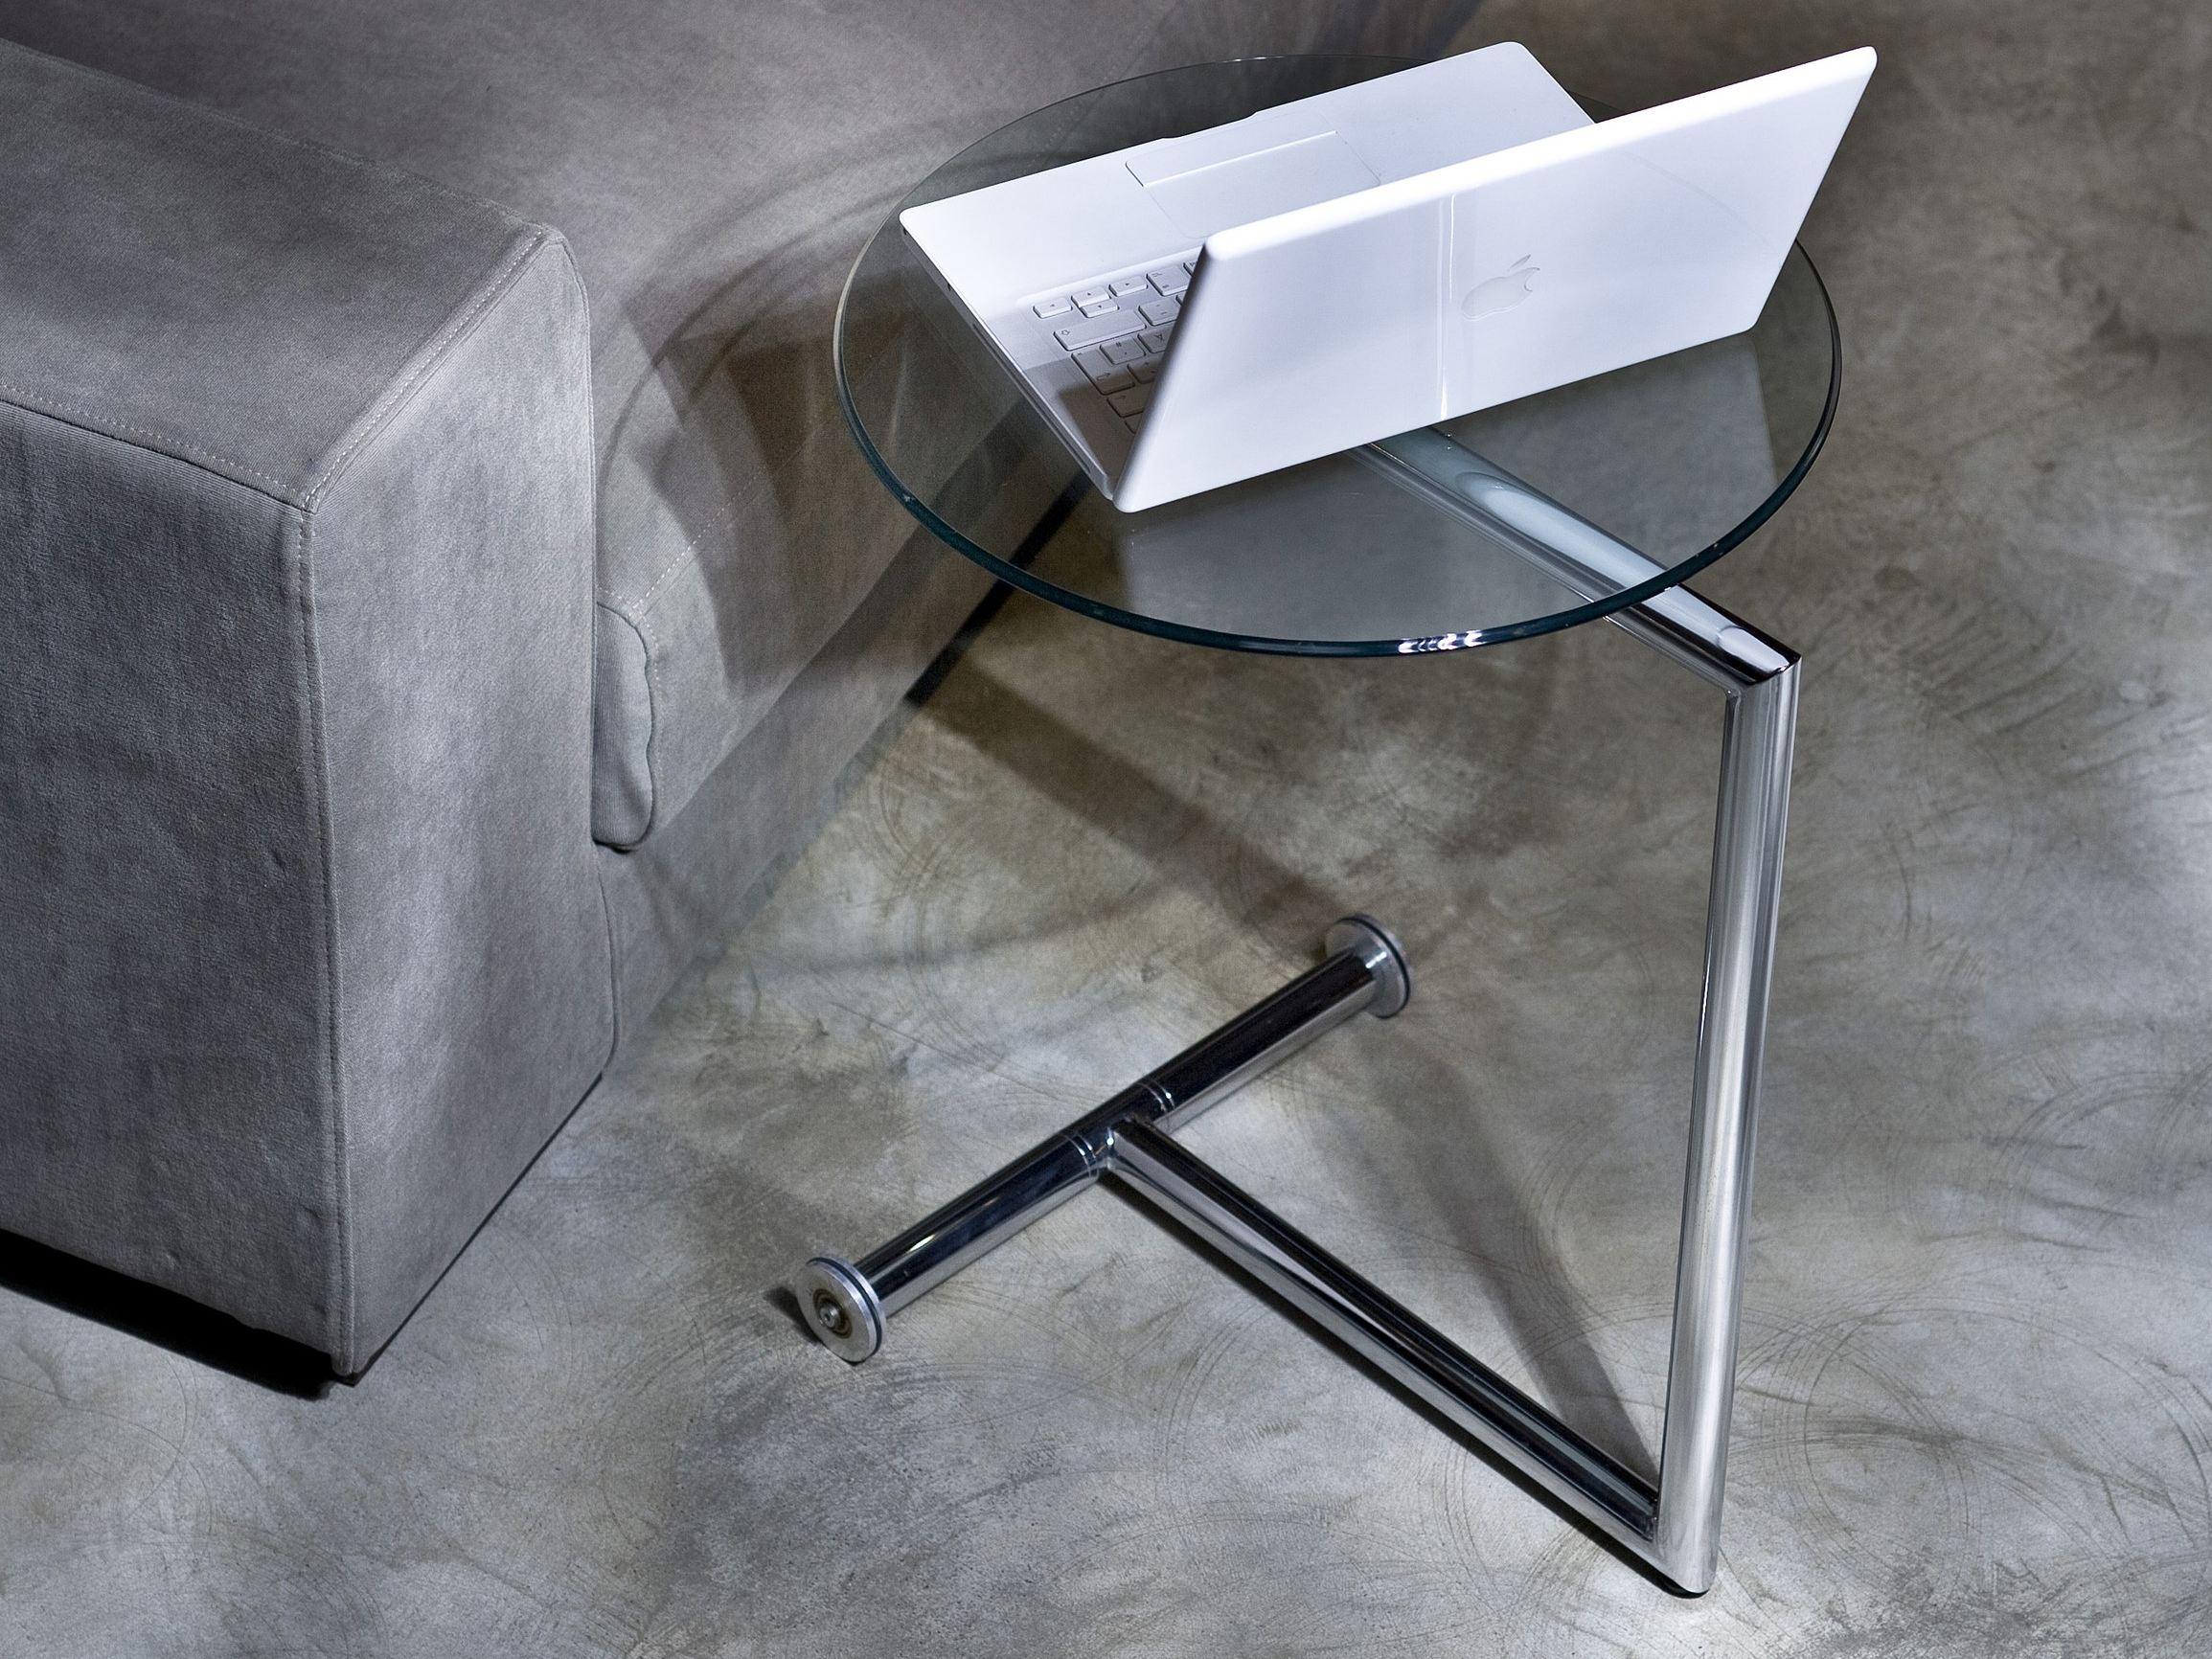 301 moved permanently - Table basse ordinateur ...